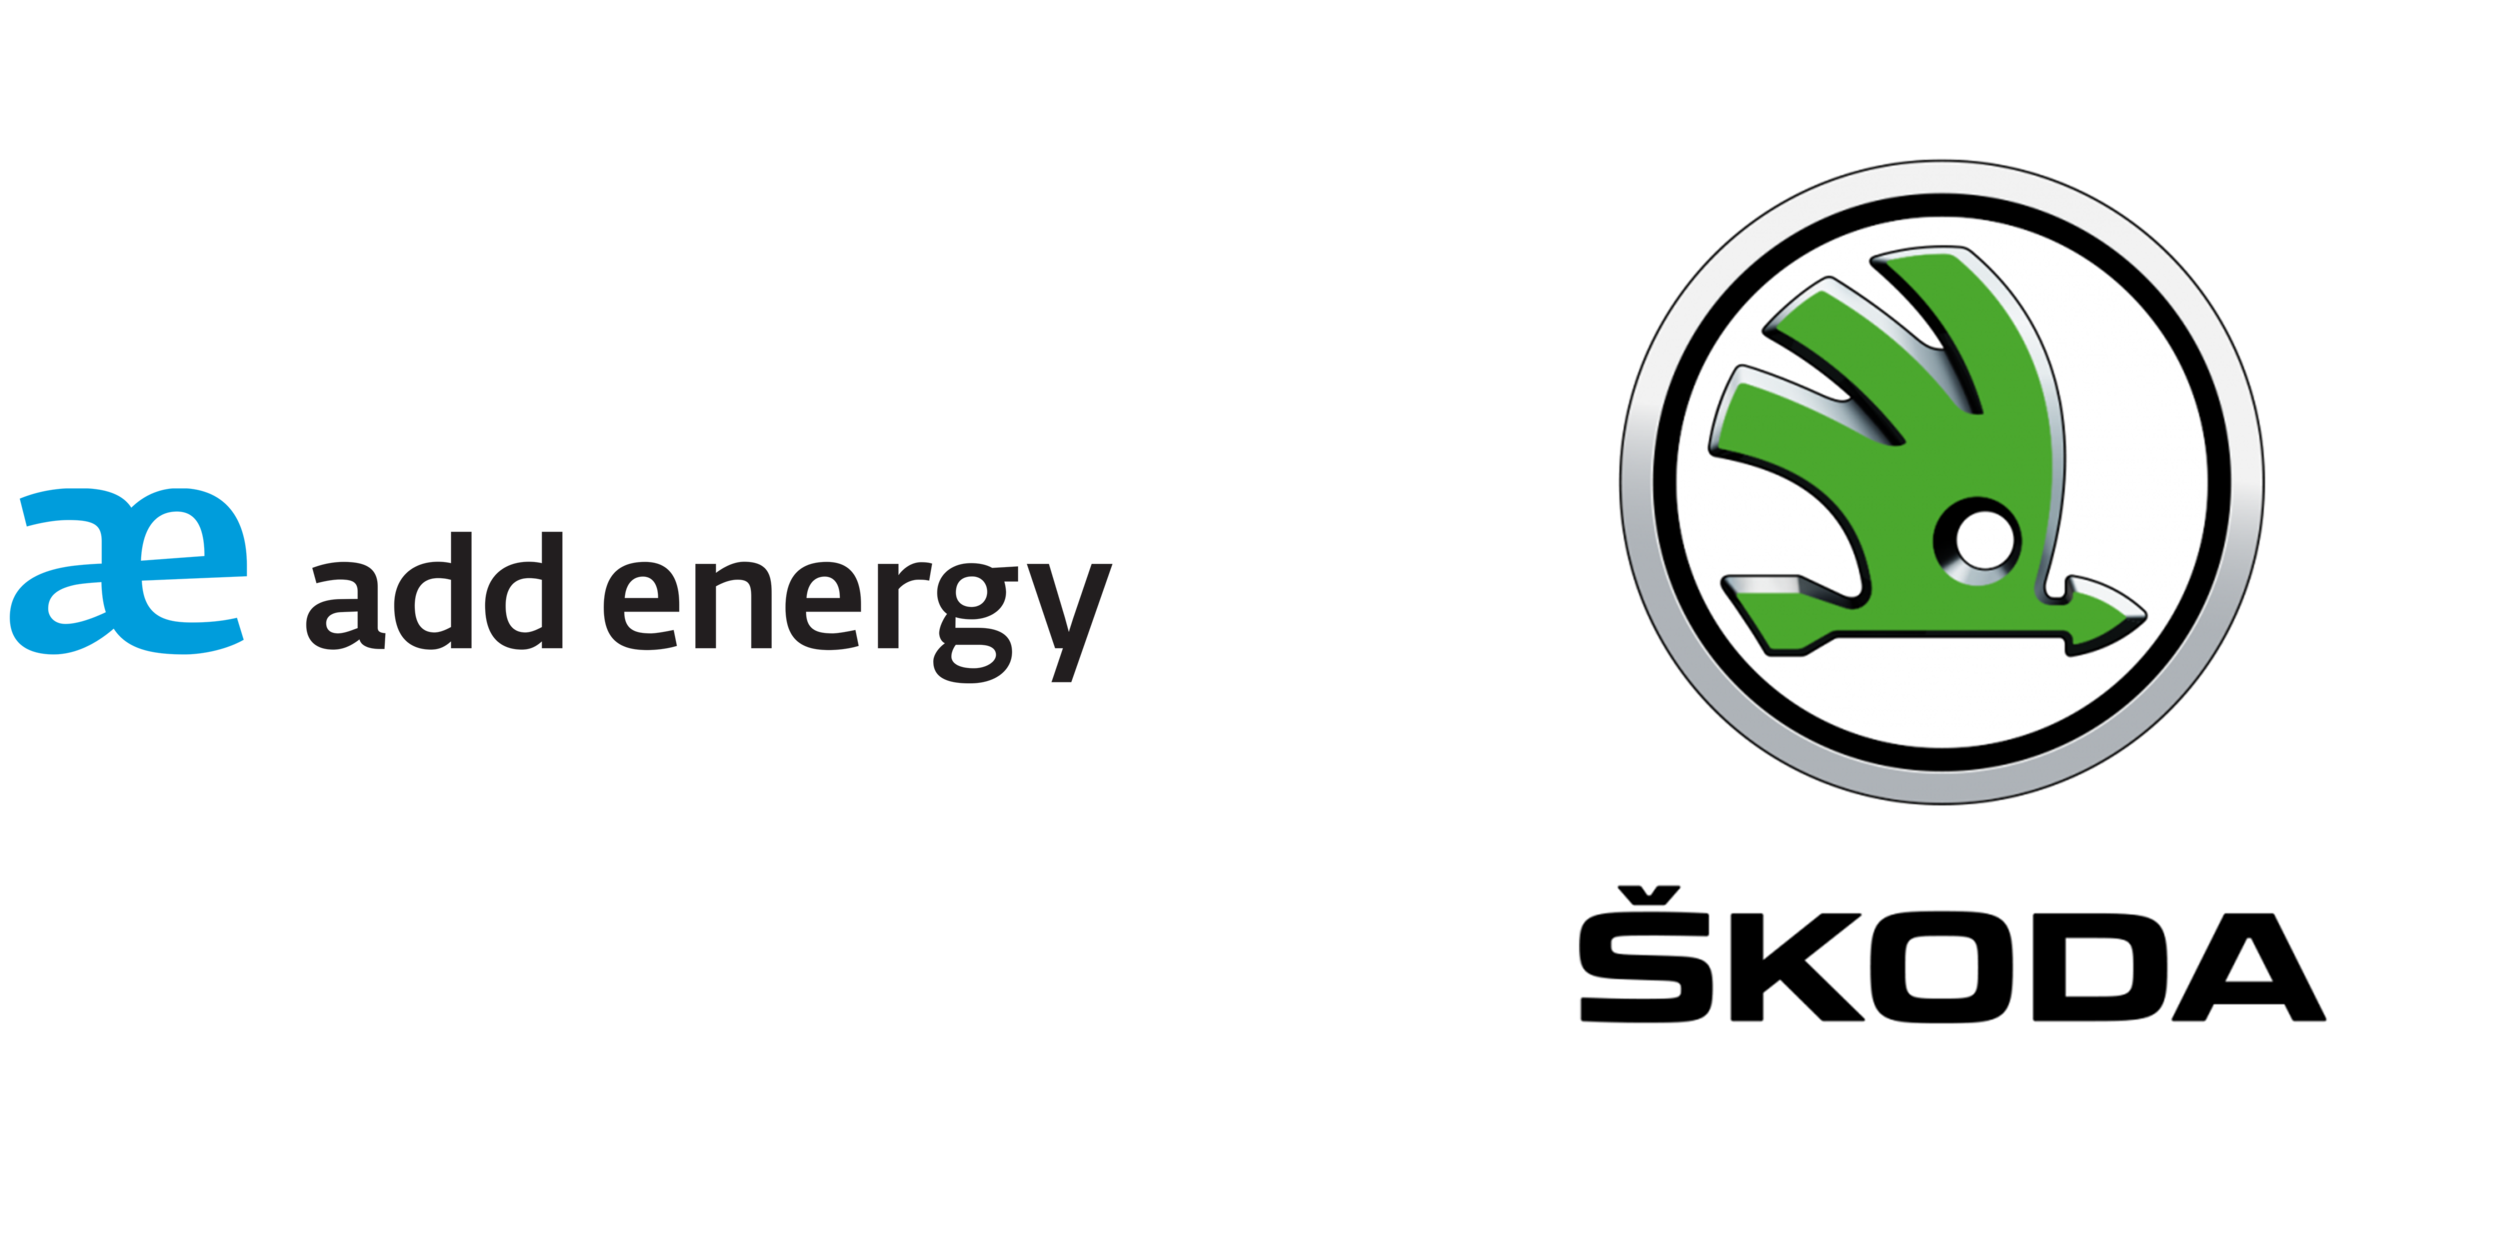 add-energy-skoda-clients.png